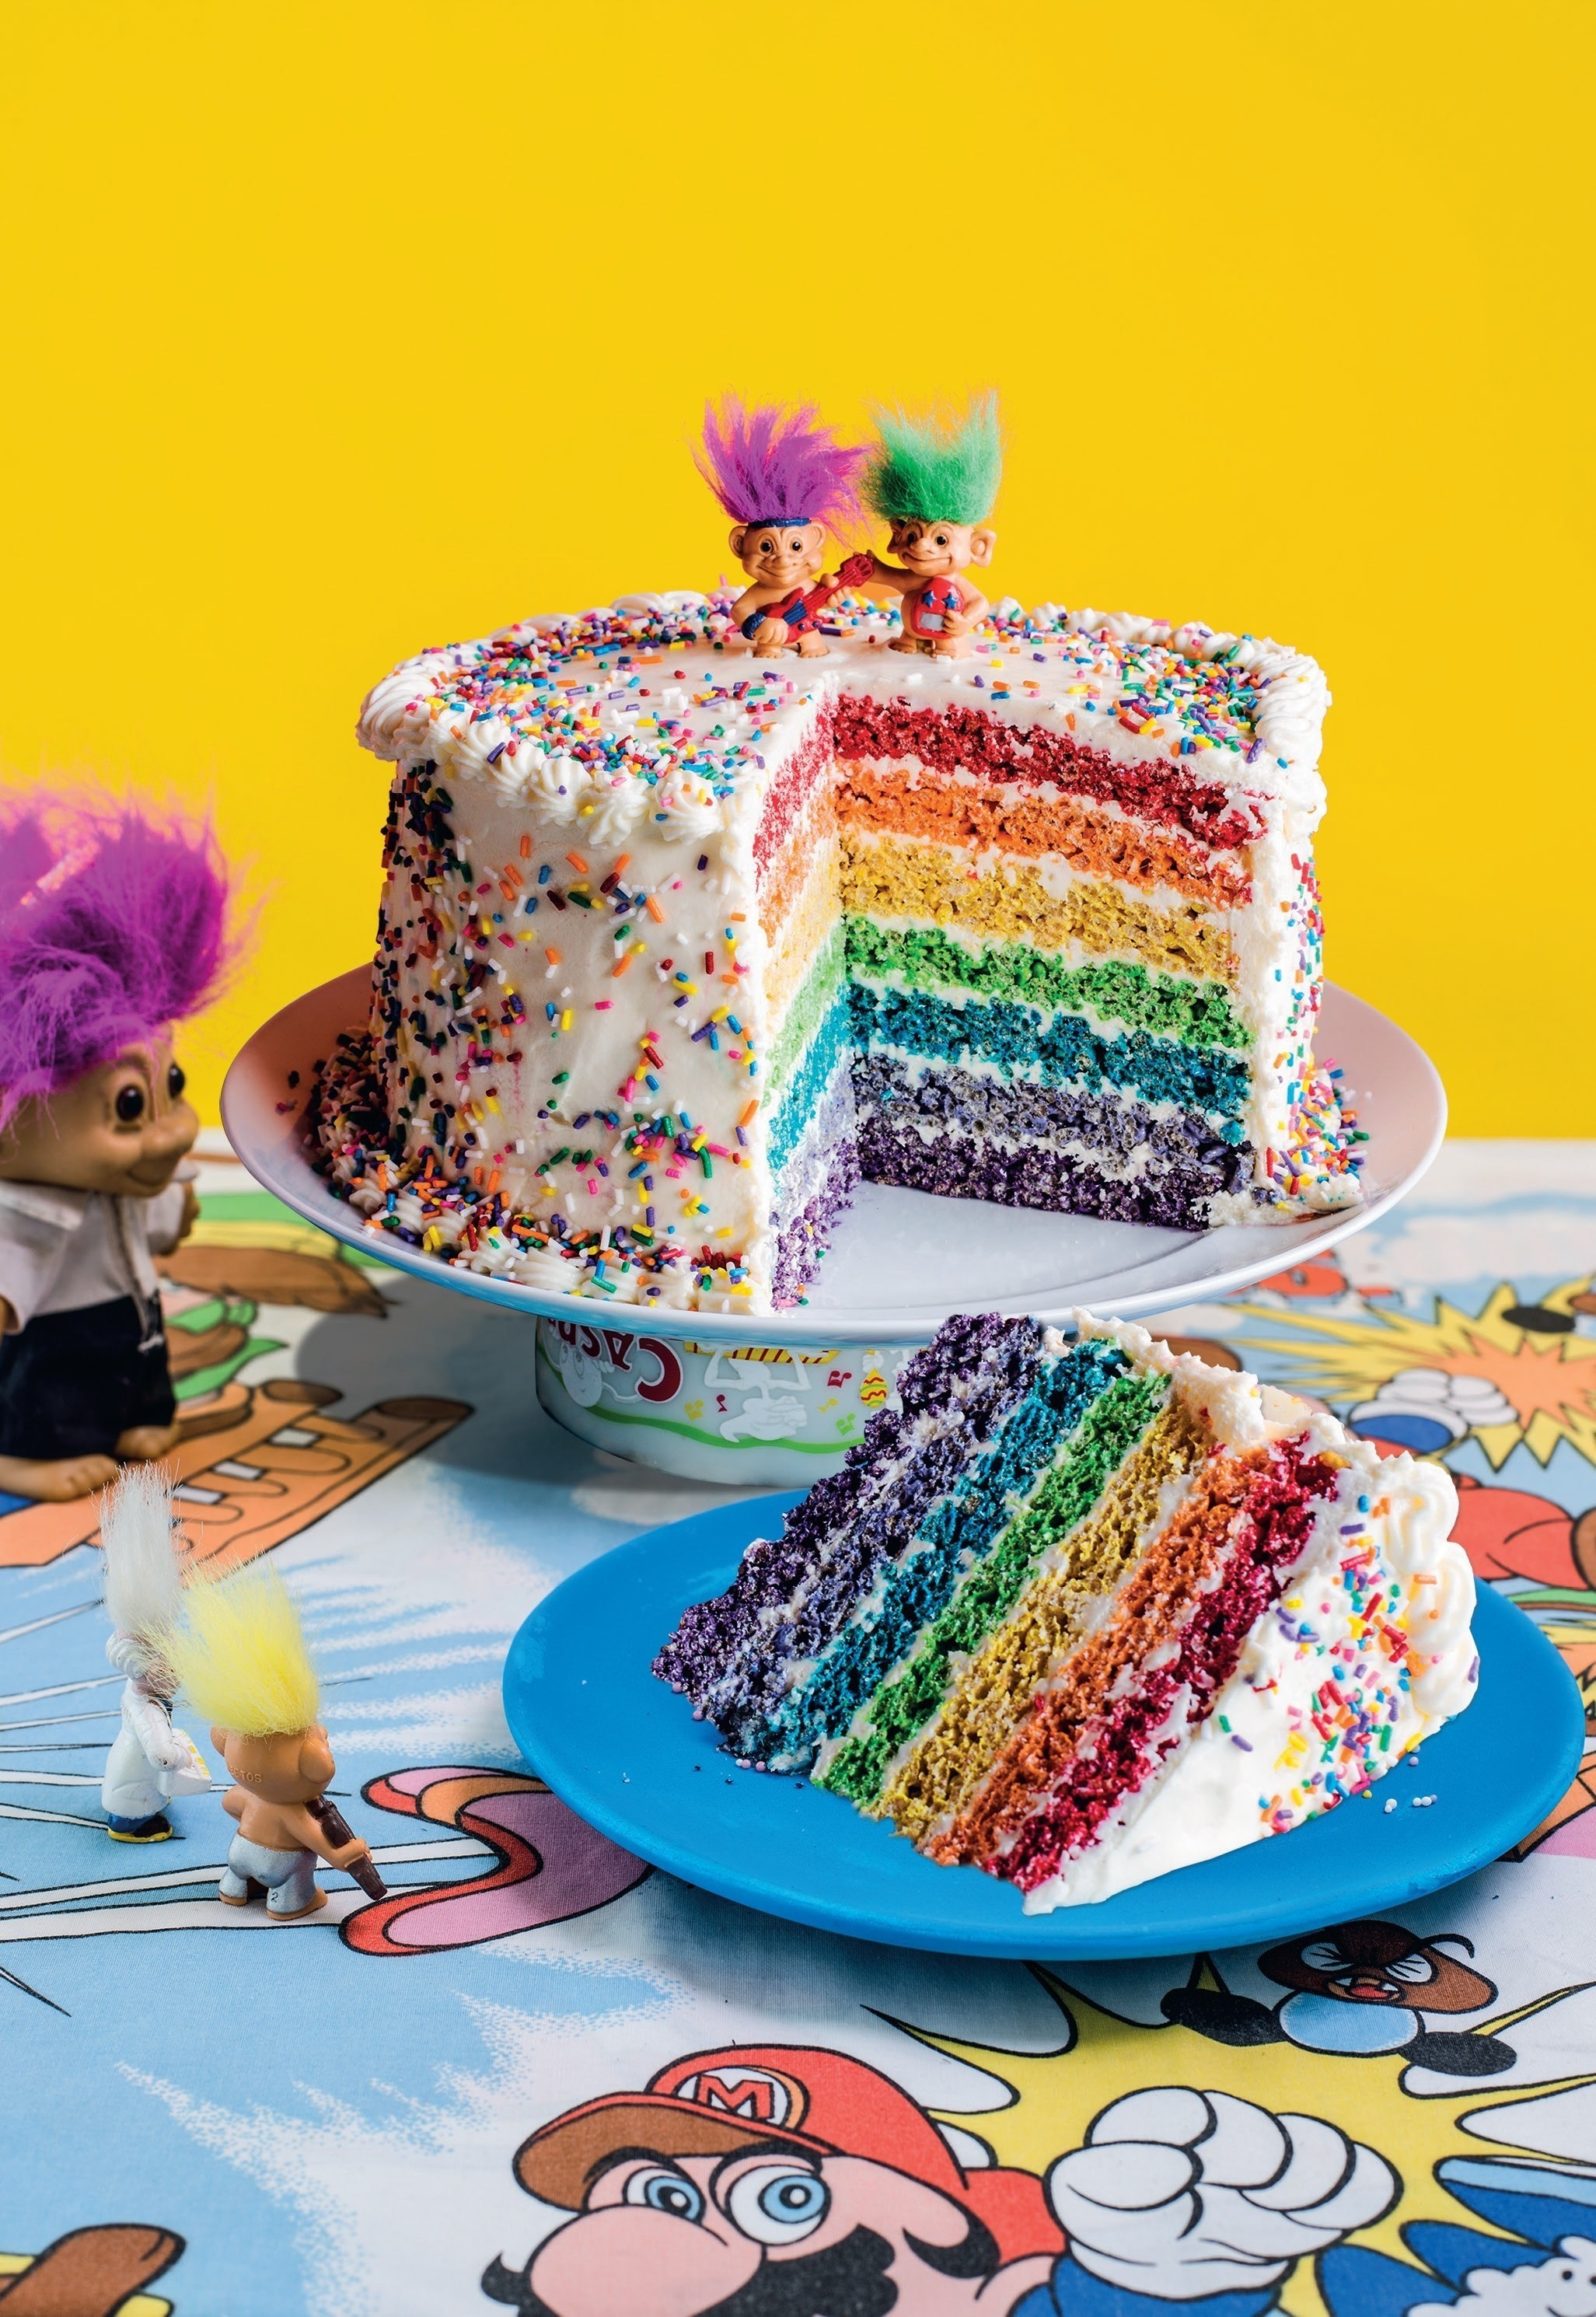 Rainbow Pop Celebration Cake 183 Extract From The Cereal